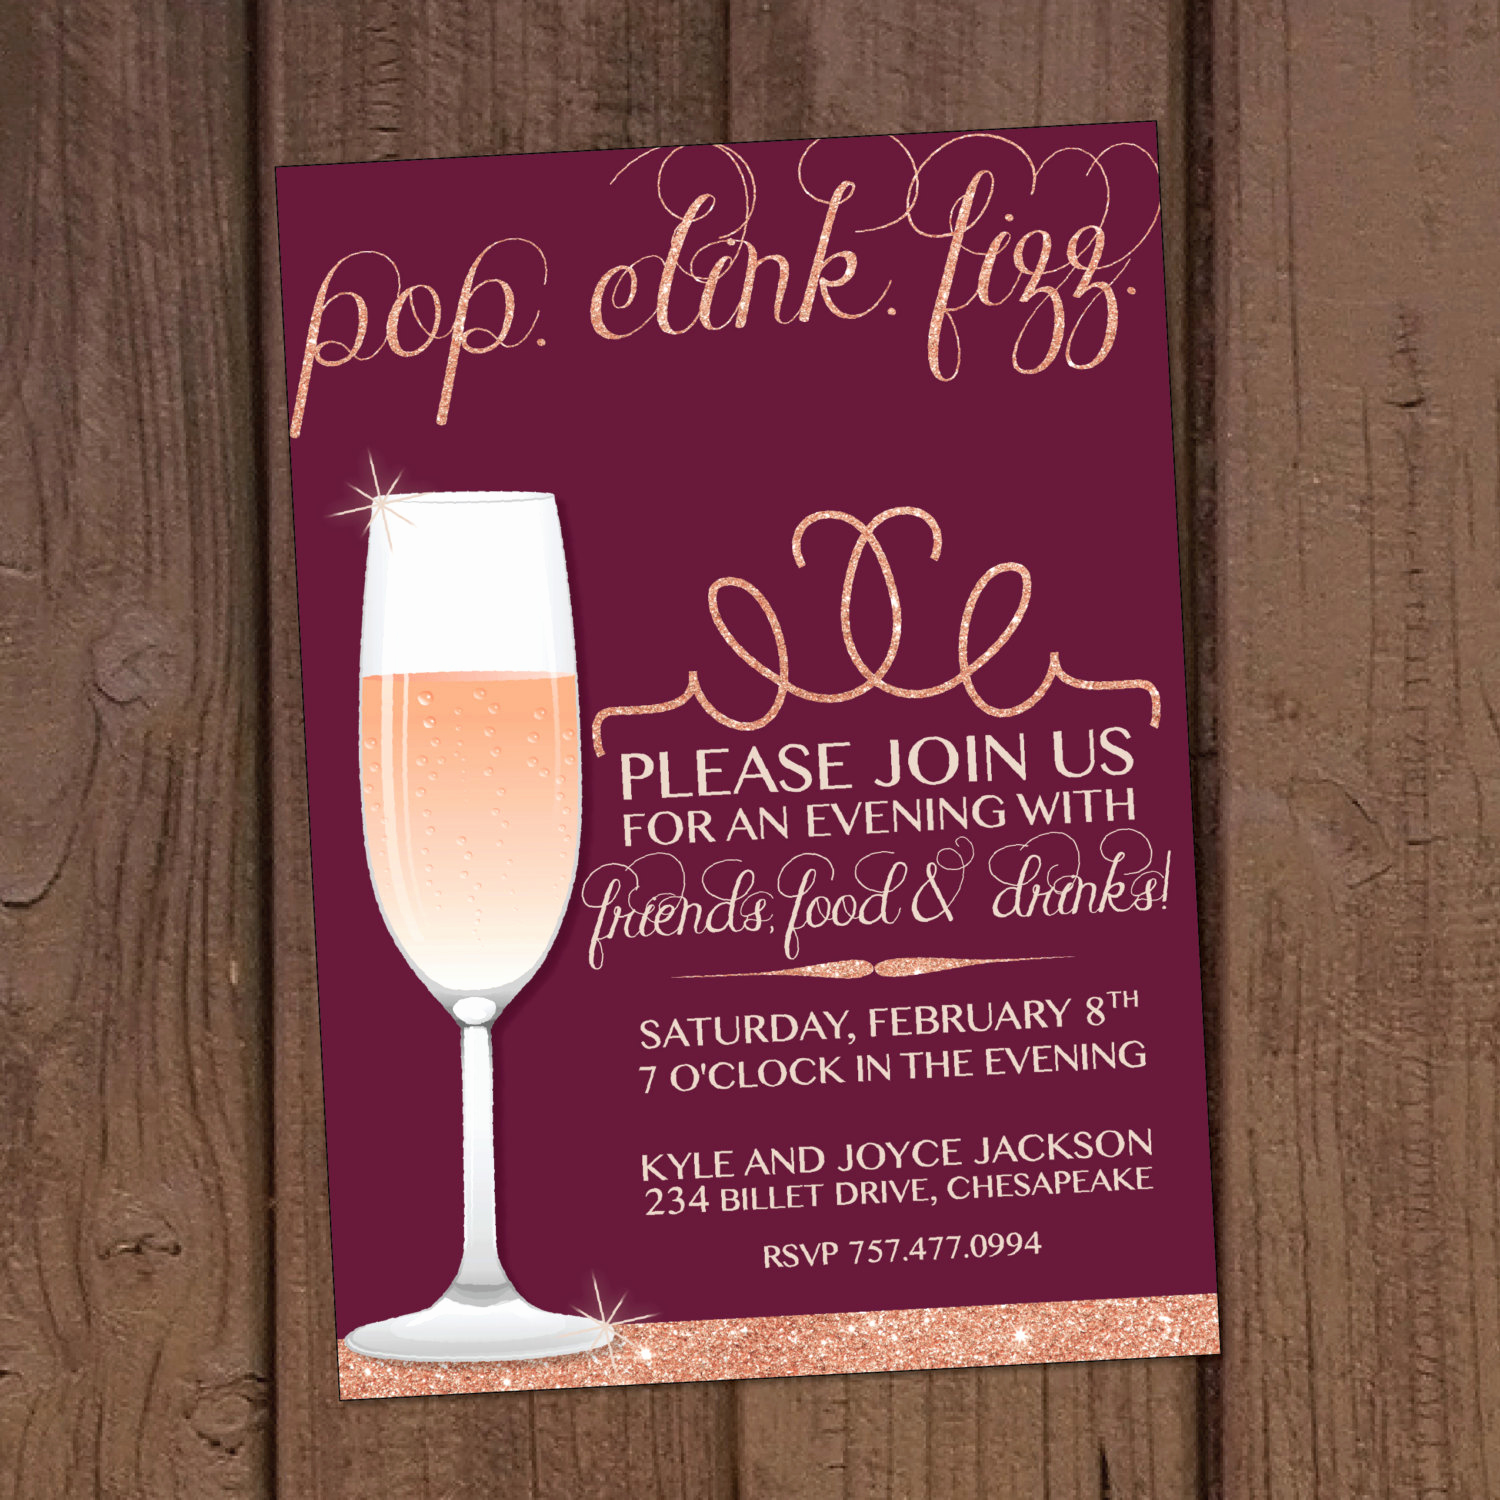 Vision Board Party Invitation Inspirational Champagne Cocktail Dinner Party Invitation